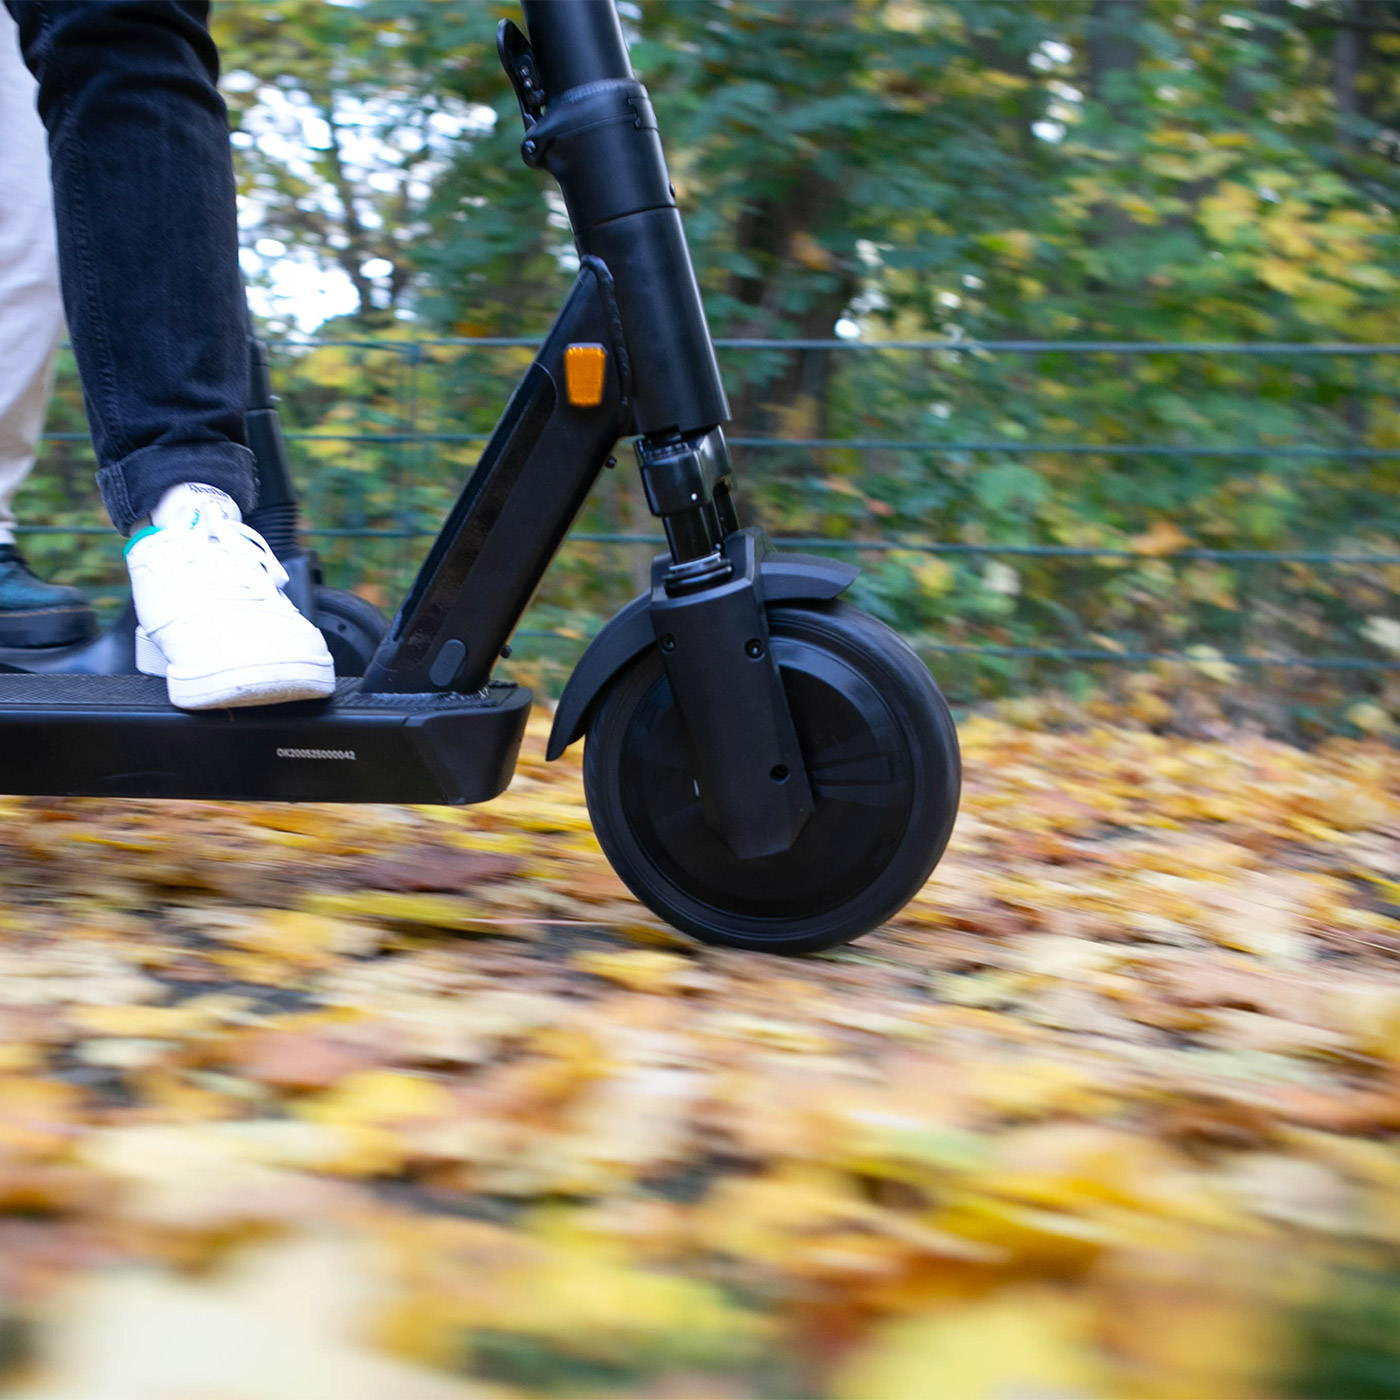 Okai-es200-electric-scooter-fast-blur-scooters